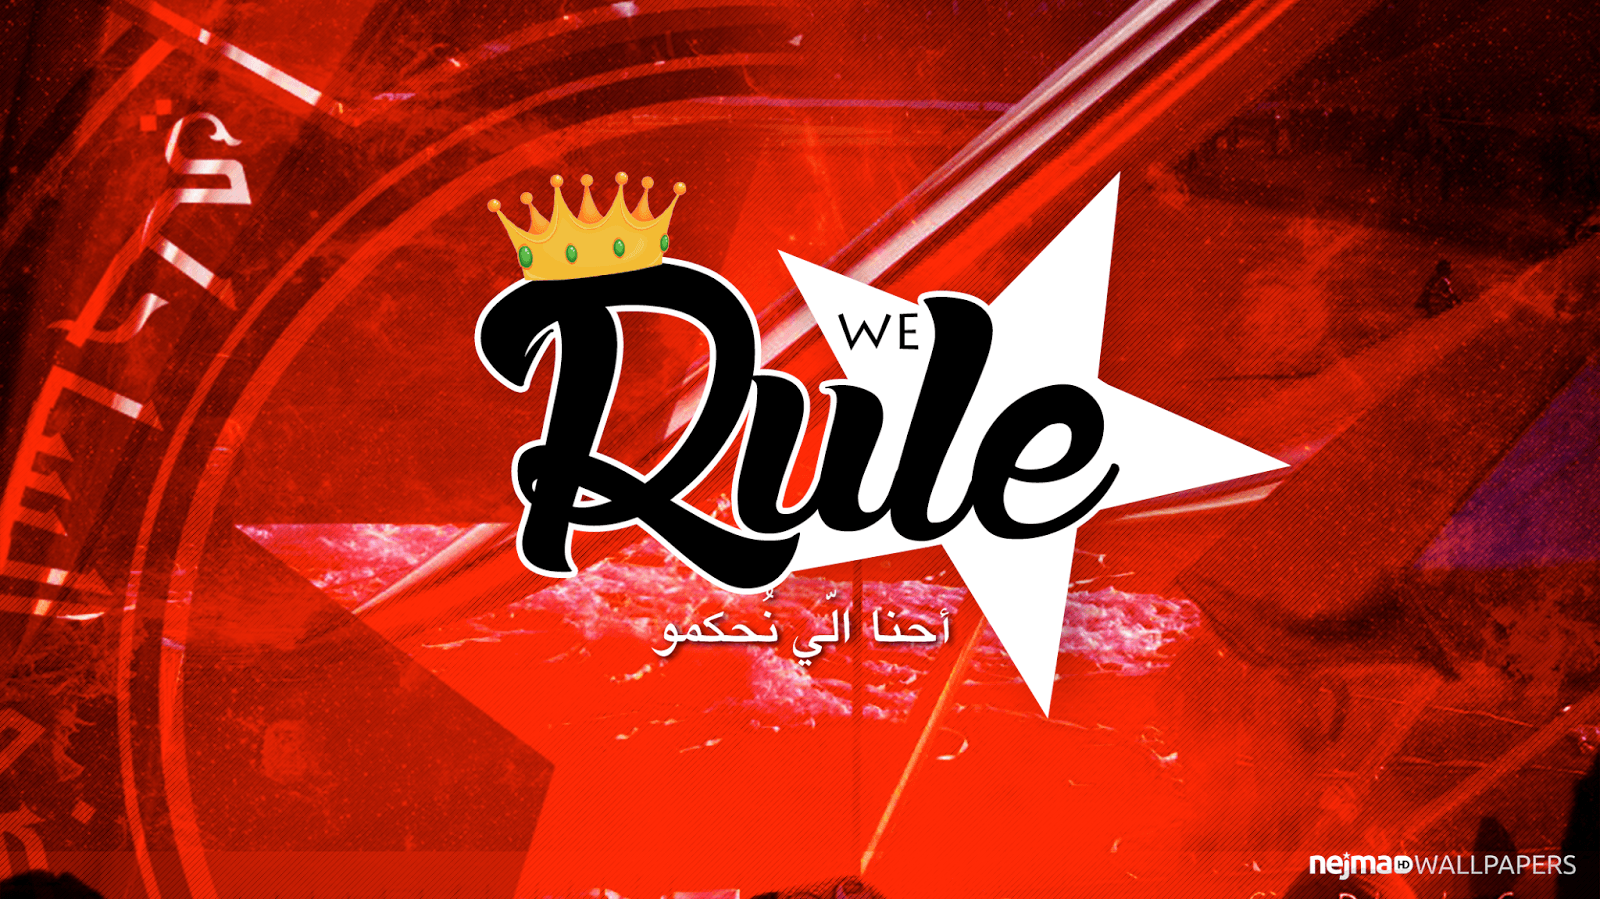 WE Rule ~ Nejma HD Wallpapers